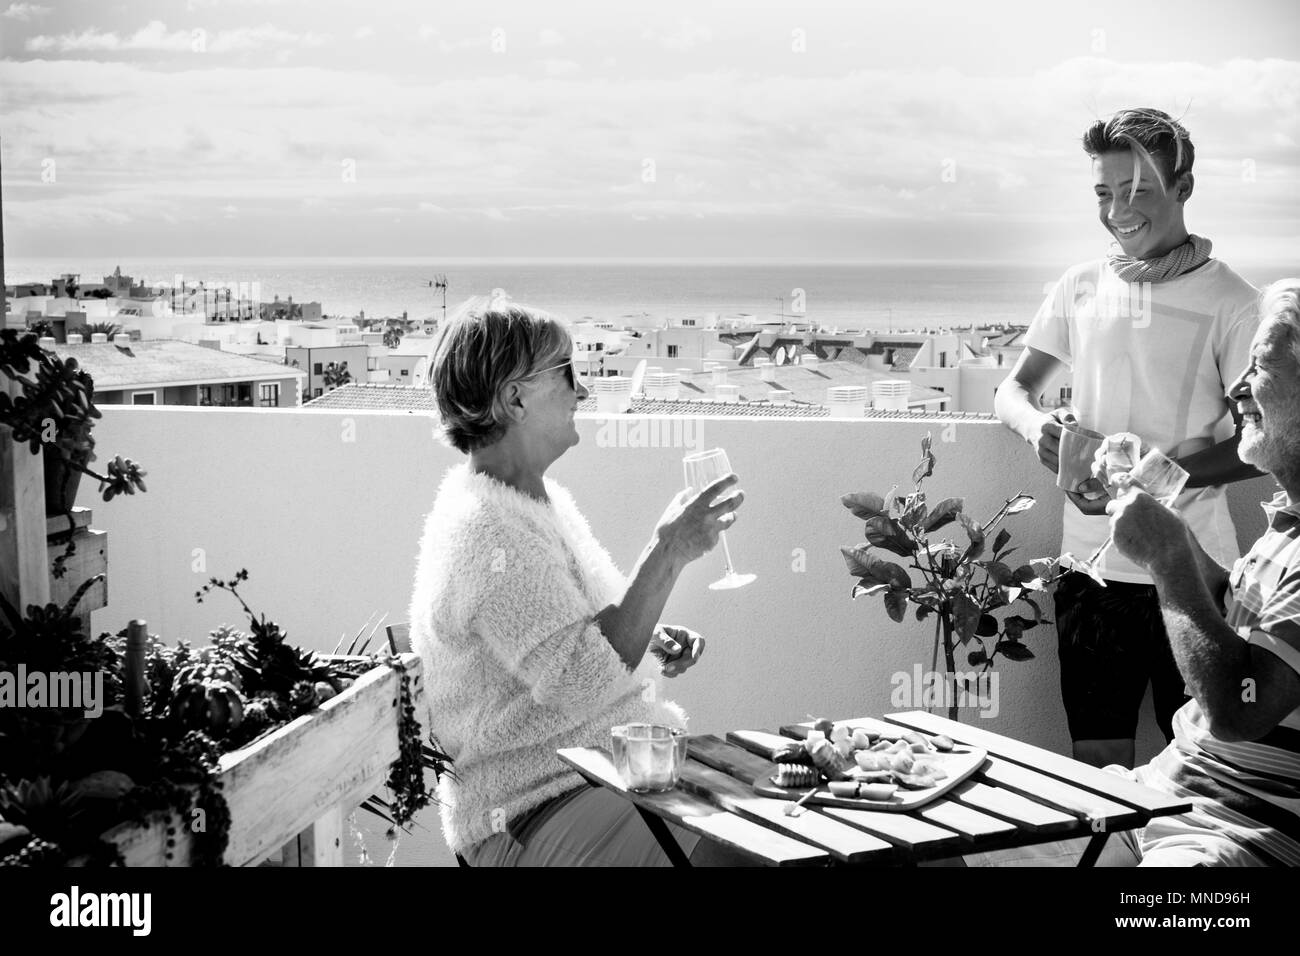 grandfathers and nephew blonde young stay on the terrace drinking and eating food on the table. amazing ocean view and clear sky for black and white i - Stock Image